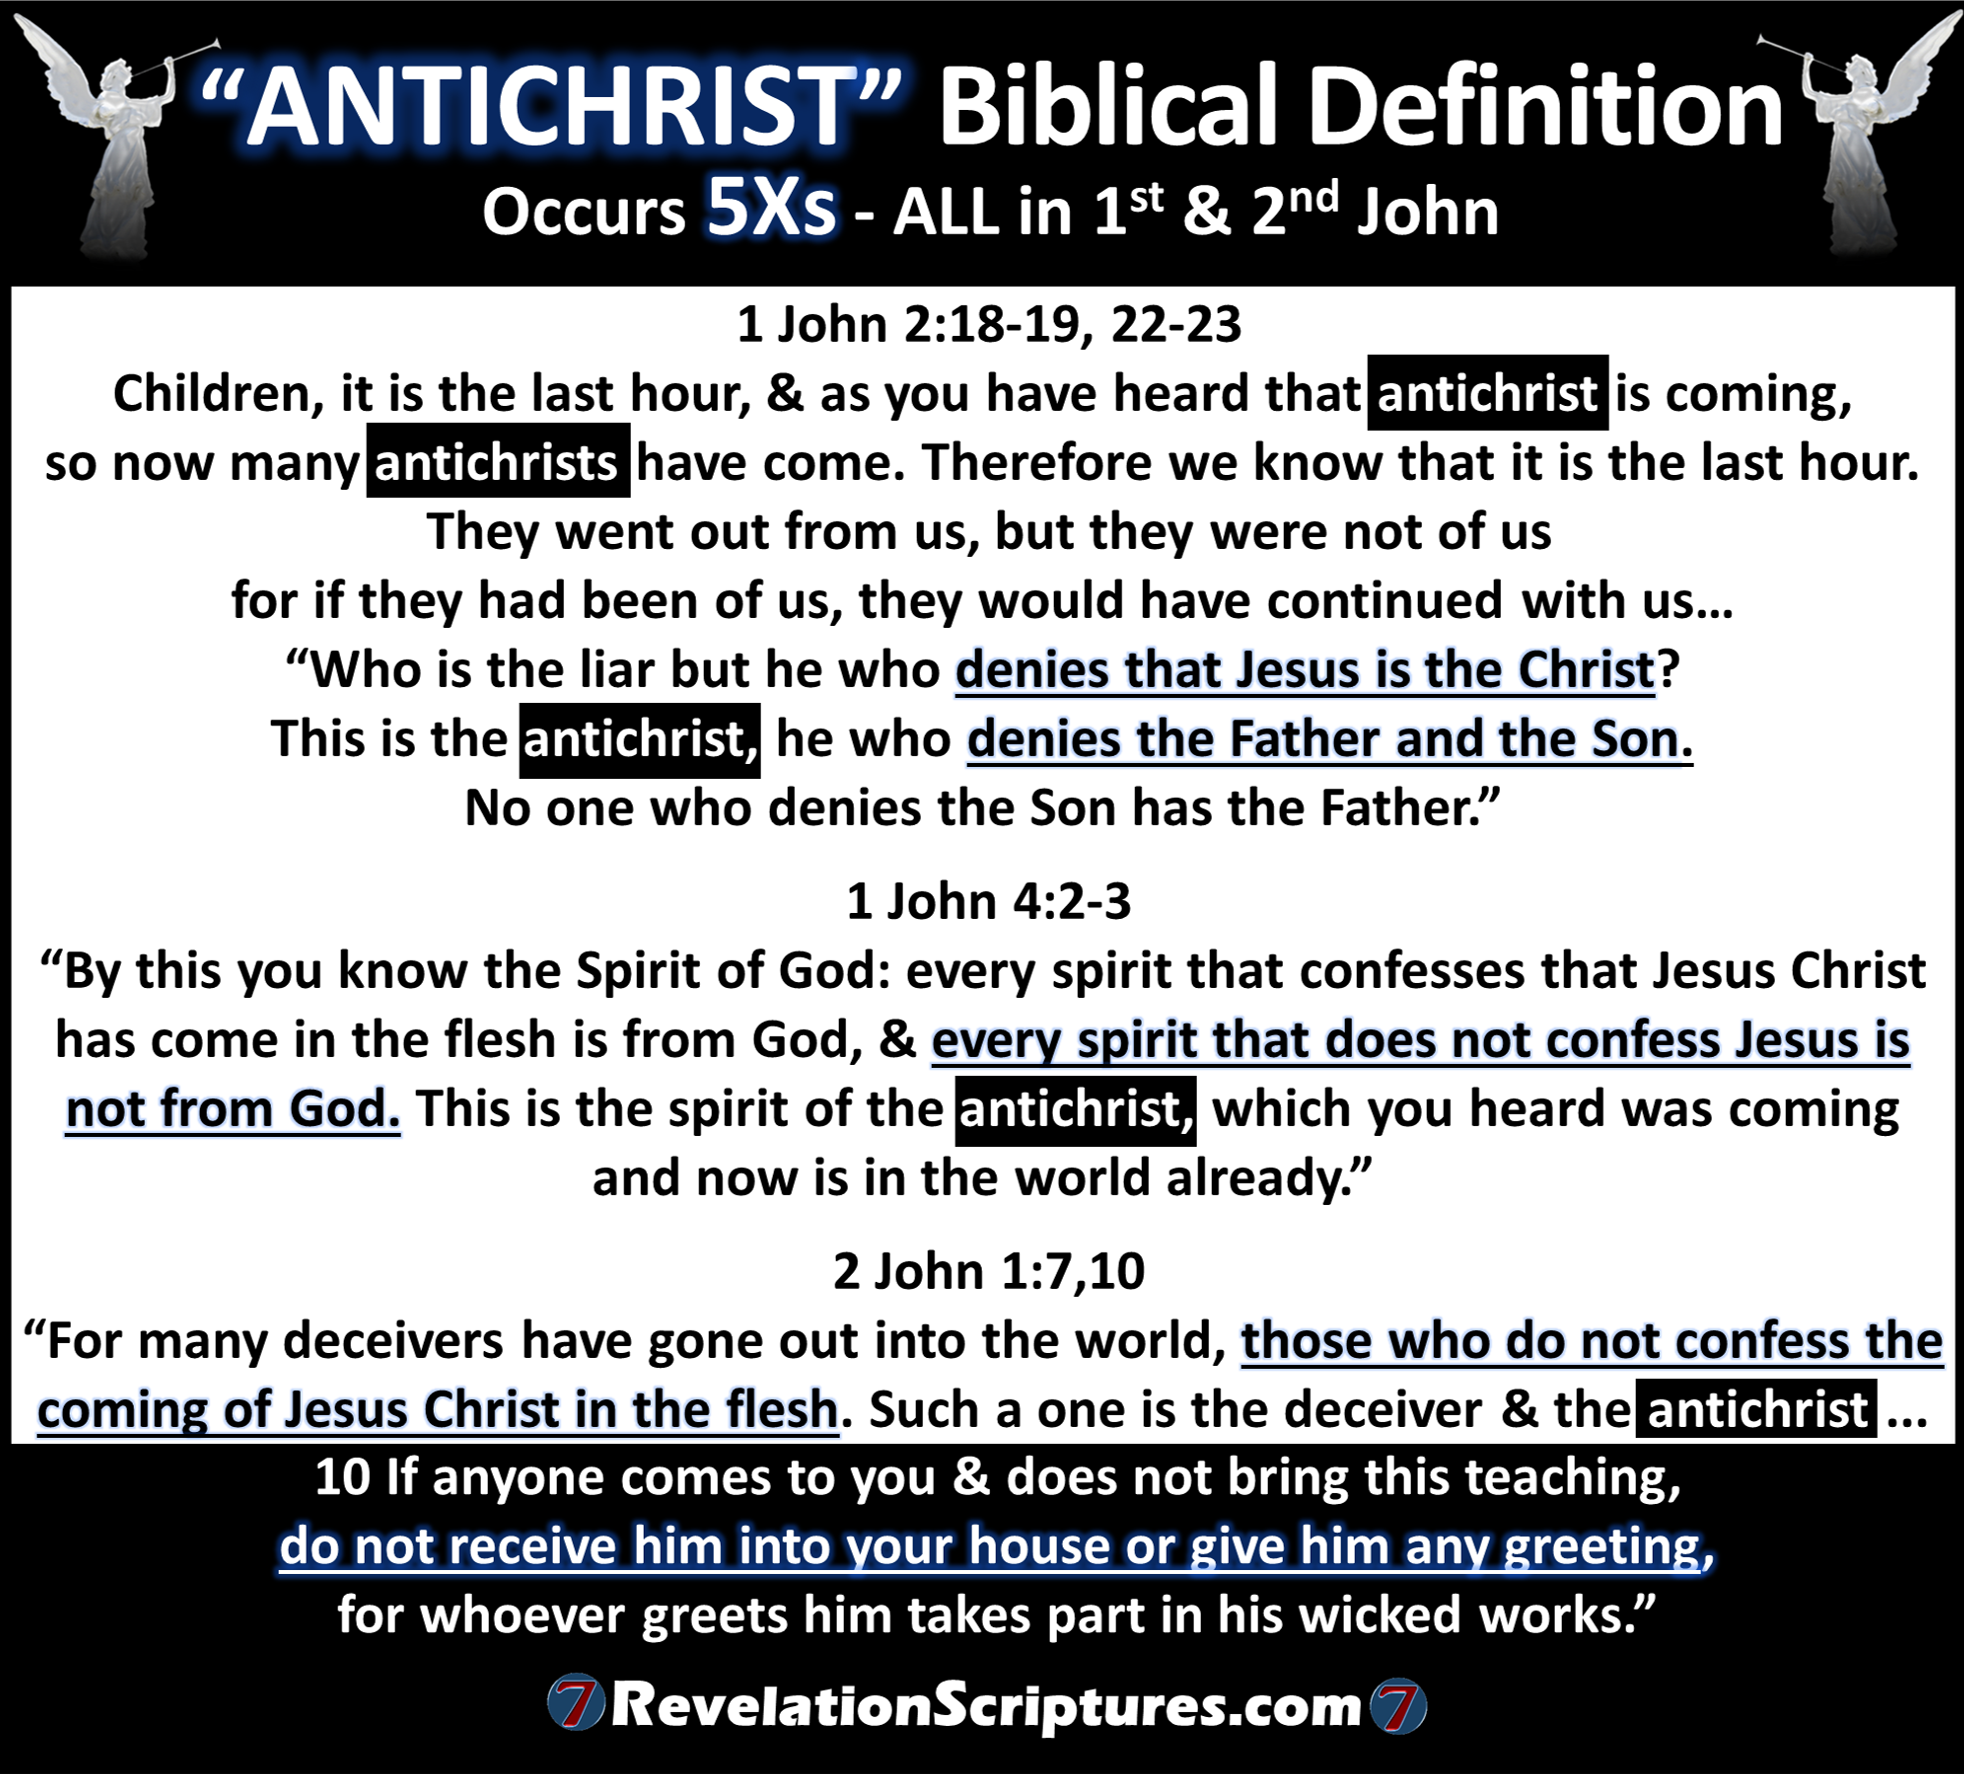 biblical definition of antichrist - what the bible says! - the book